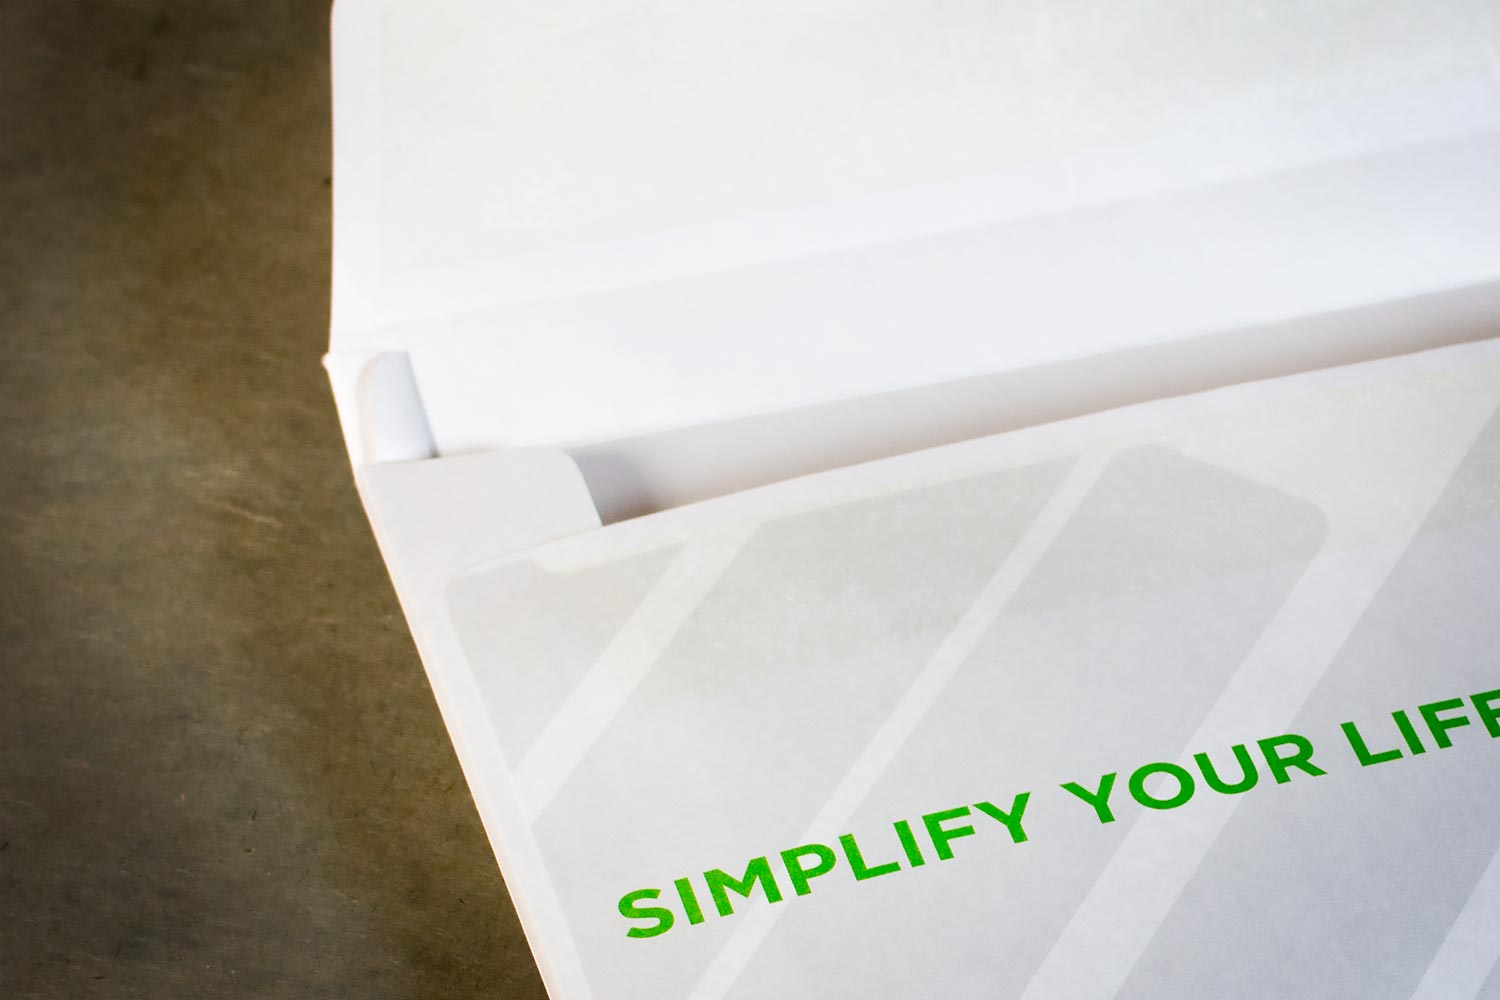 Use a center seam or expansion to maximize your envelope's capacity